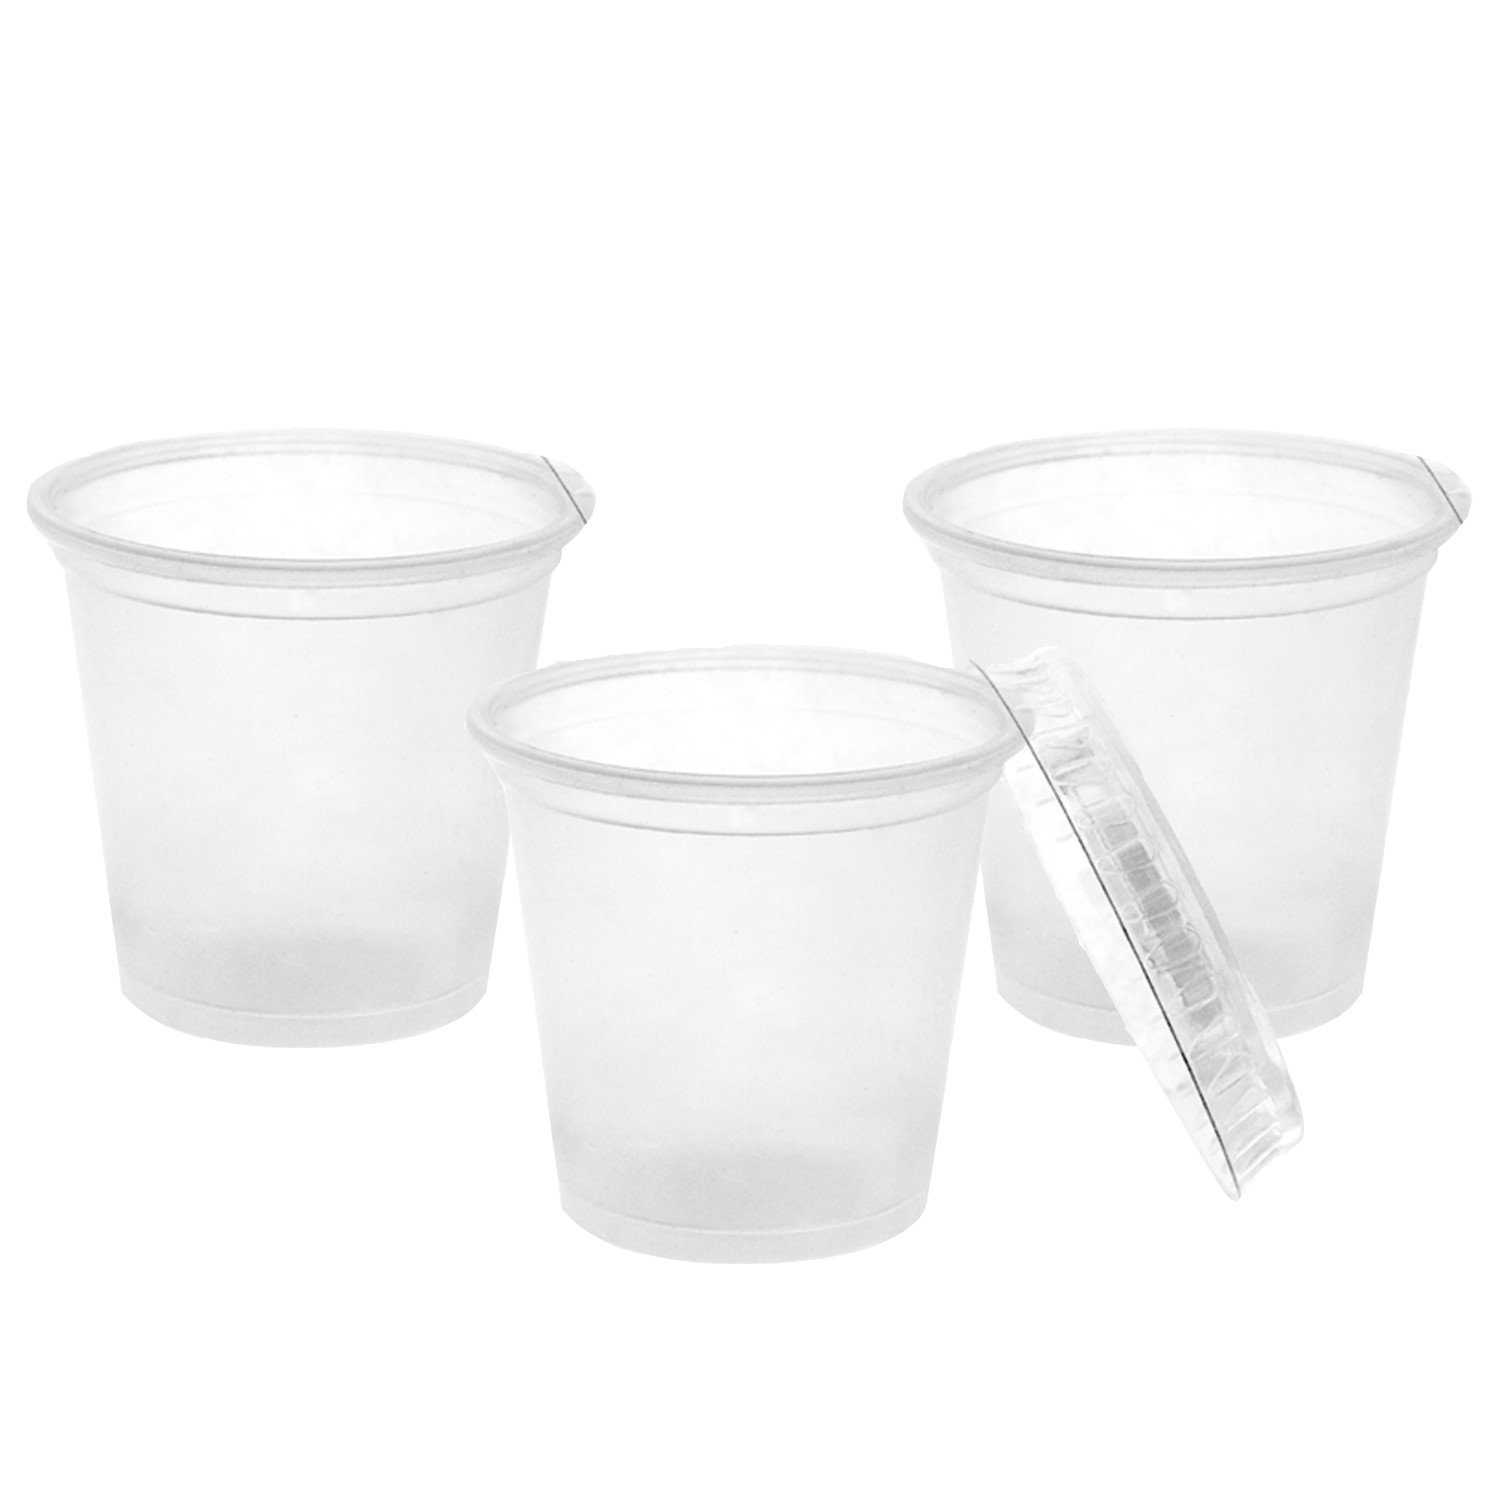 Party Essentials N201312 Party Supplies Tableware, 25-Count, Clear by Party Essentials